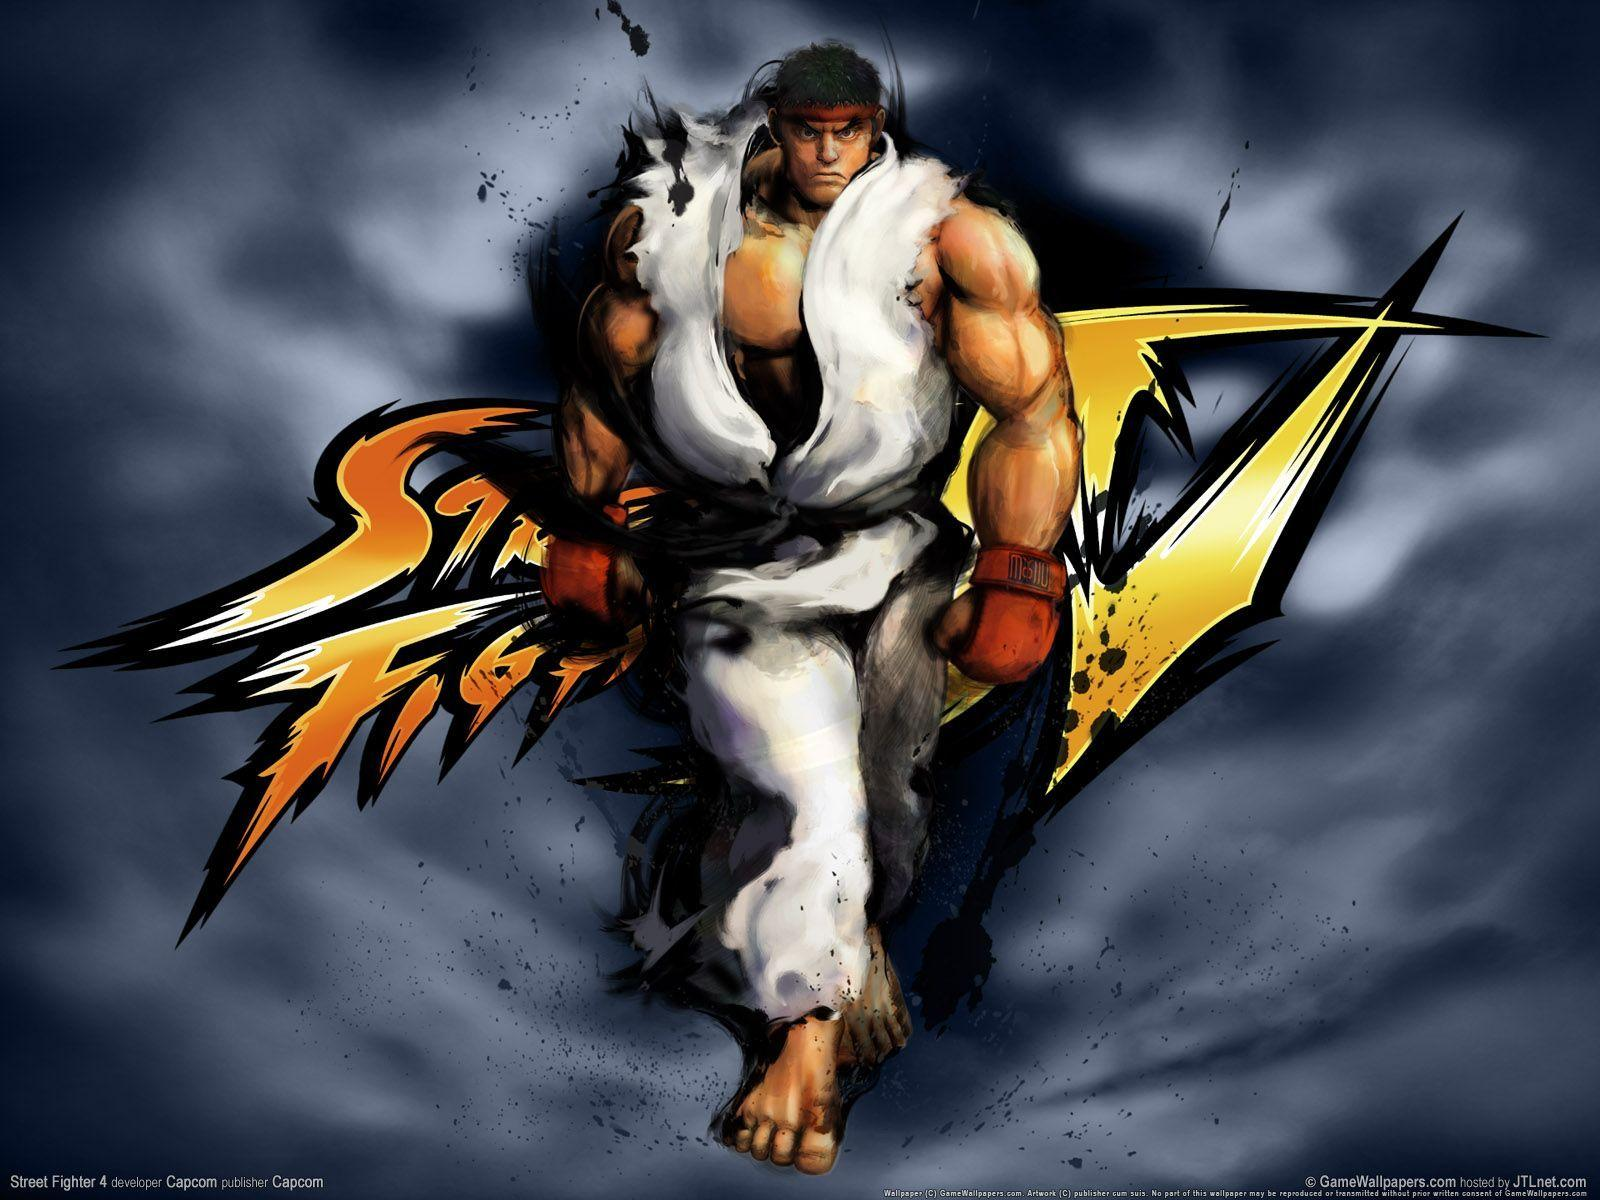 Street Fighter 4 Wallpapers - Wallpaper Cave